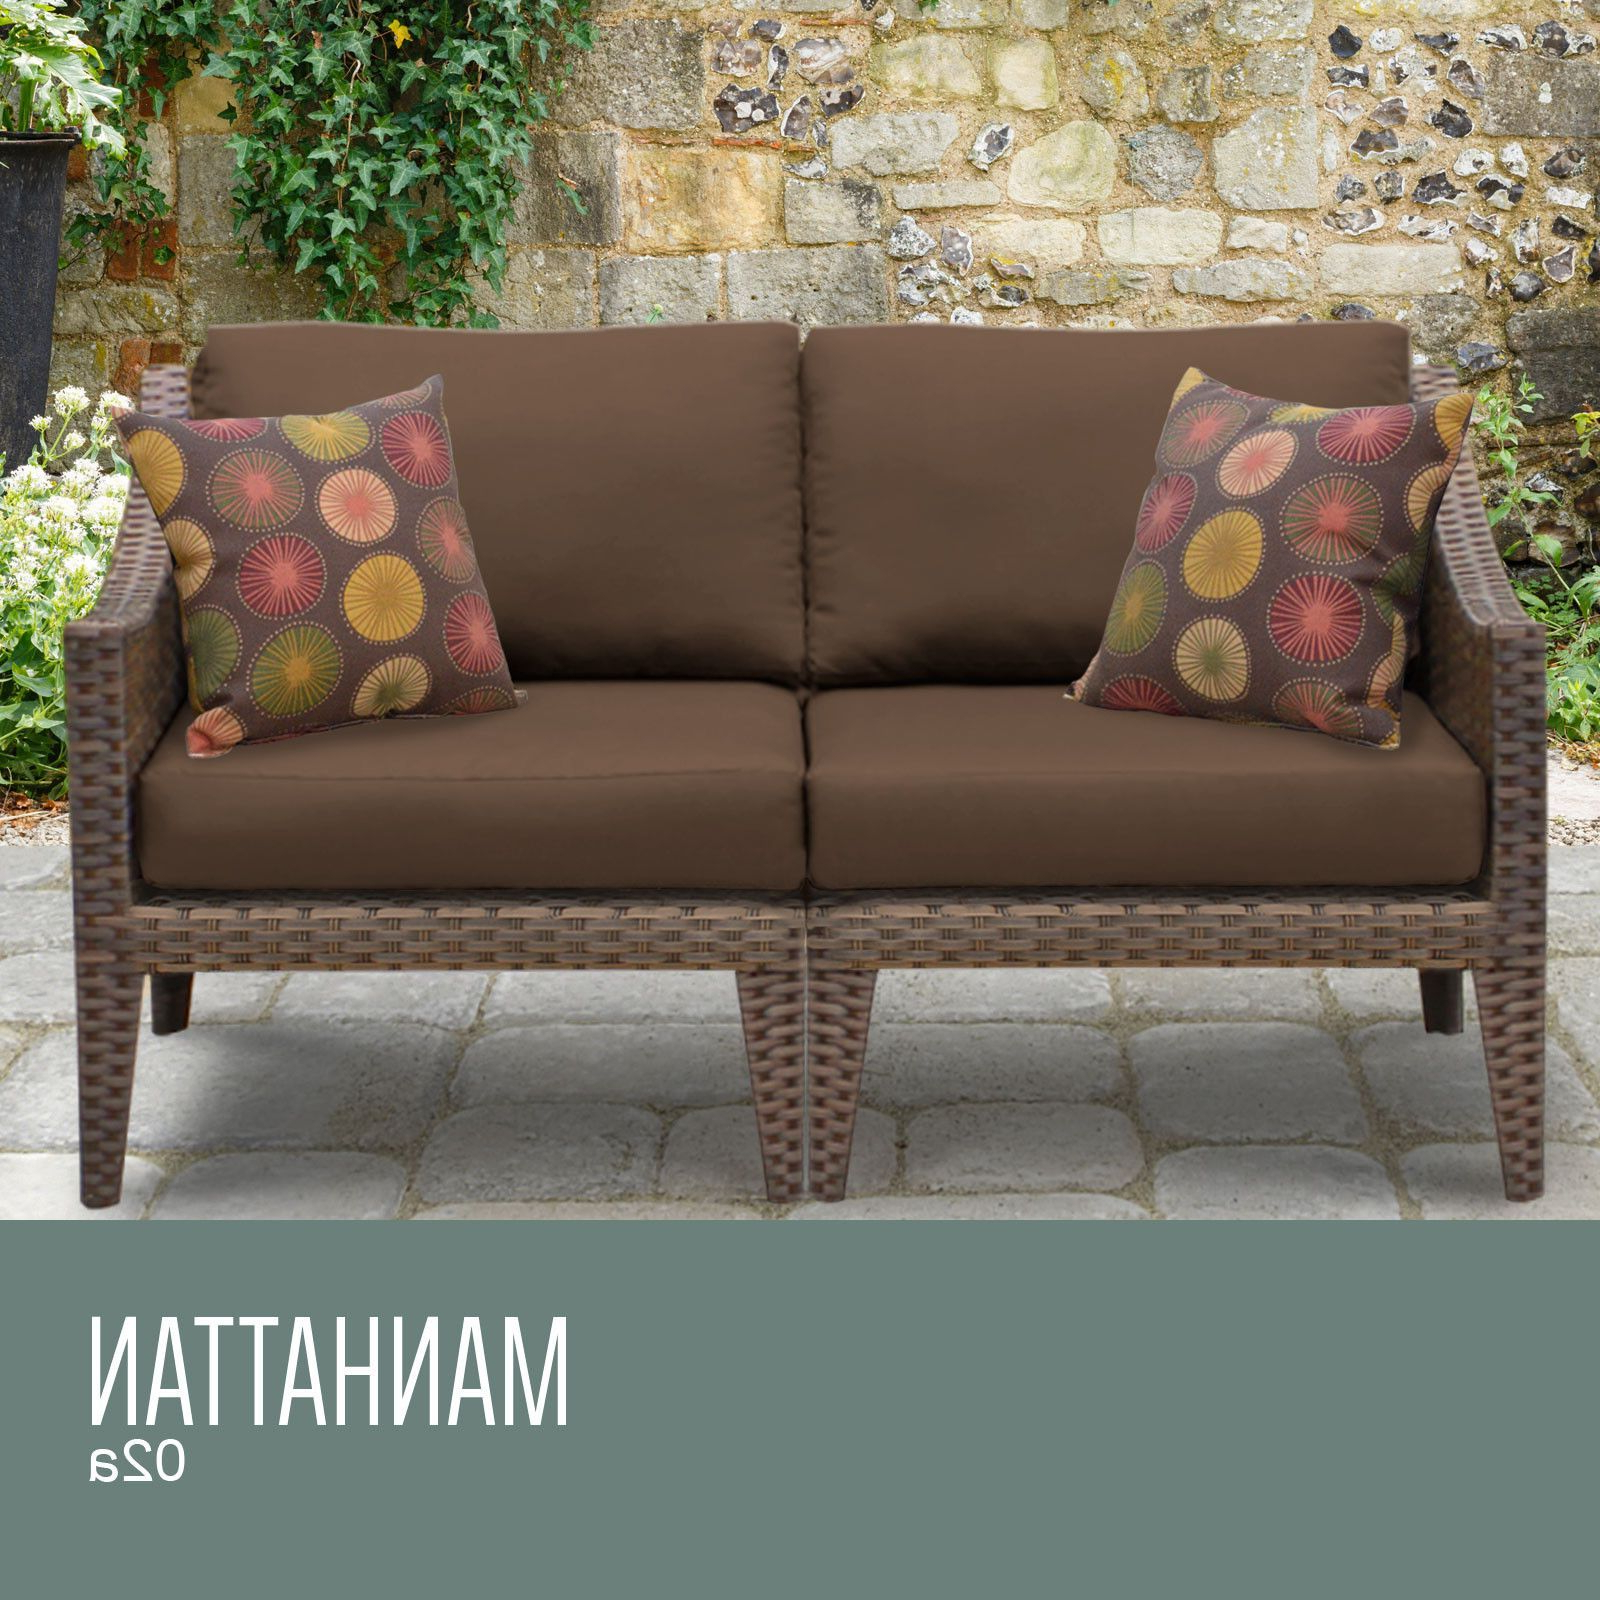 Provencher Patio Loveseats With Cushions Pertaining To Widely Used Manhattan 2 Piece Outdoor Wicker Patio Furniture Set 02a (View 19 of 20)